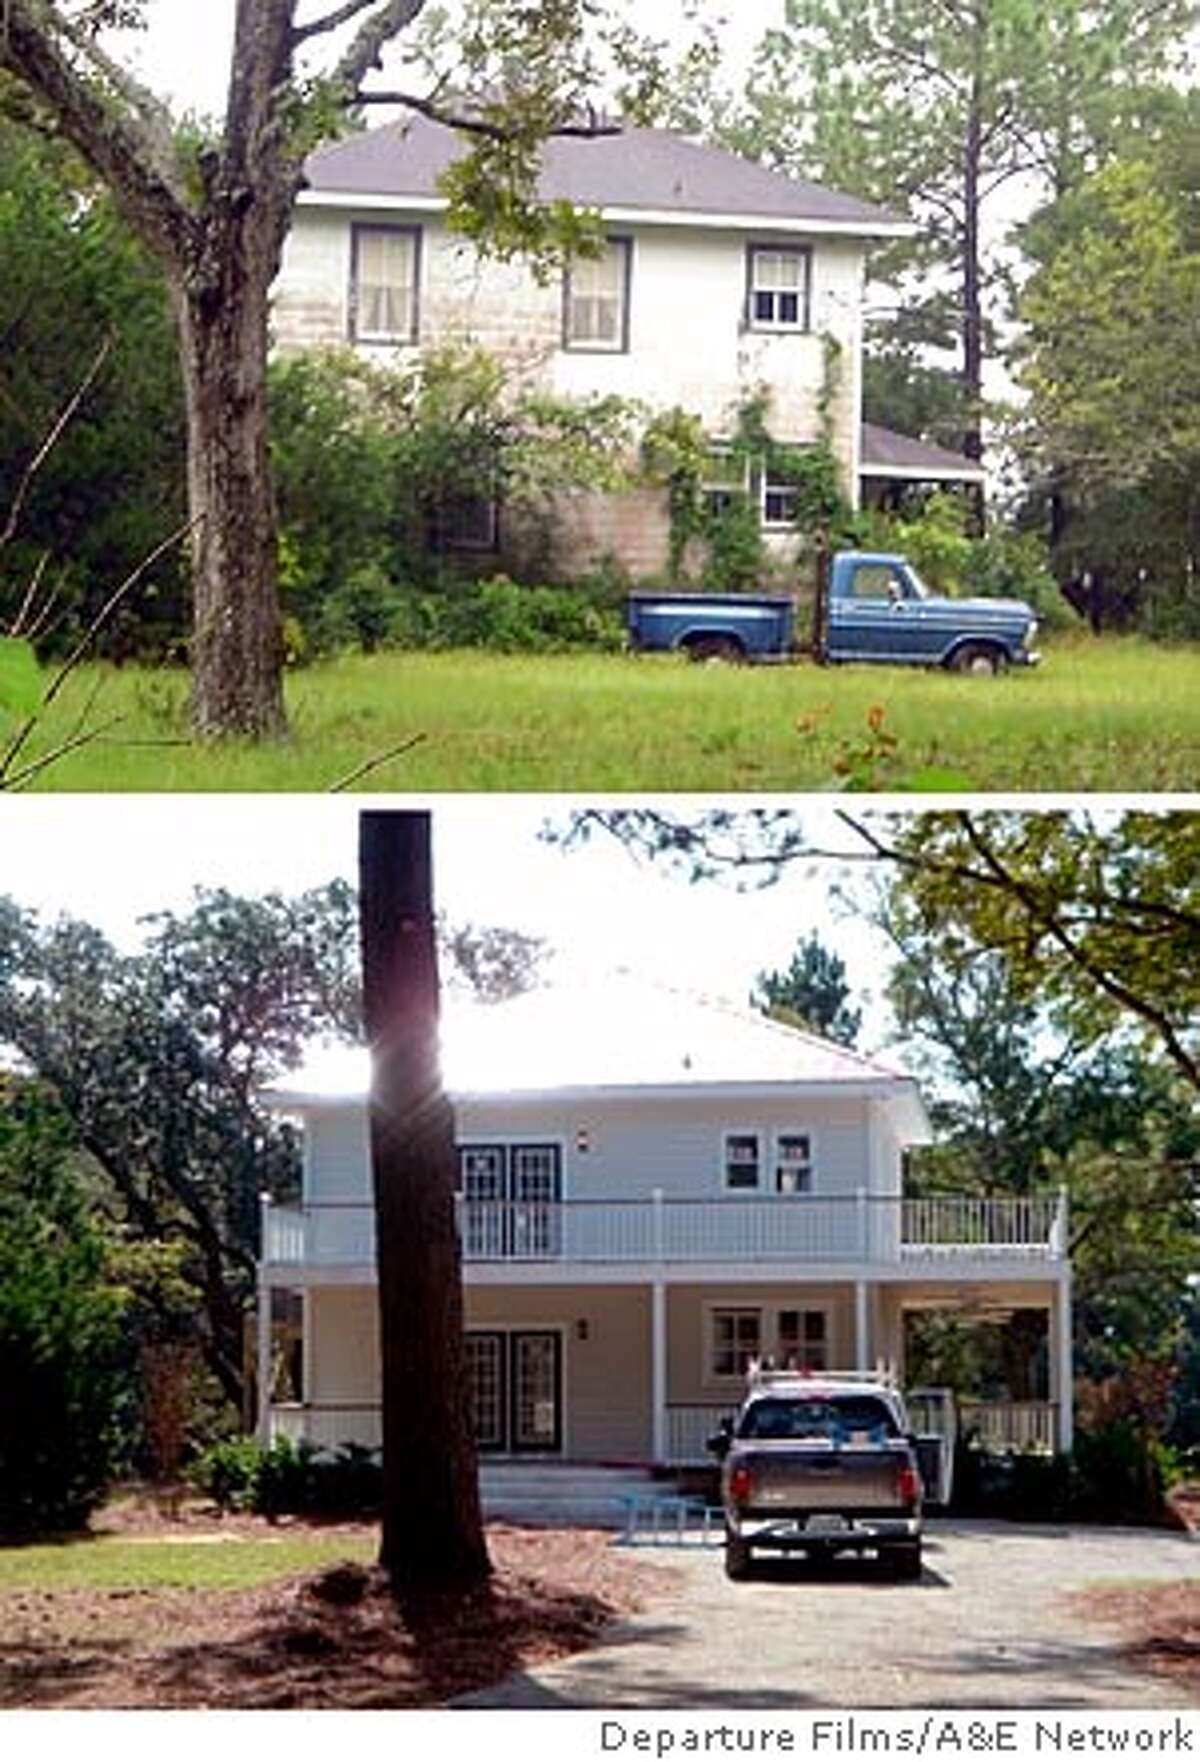 (NYT8) JAMES ISLAND, S.C.-- Aug. 5, 2005 -- HOUSING-TV-1 -- A house purchased for $235,000, top, before $155,000 in renovations shown on''Flip This House'' on A&E. Below, the house after which was sold for $550,000. (Departure Films/A&E Network via The New York Times) XNYZ - WITH HOUSE & HOME STORY BY VIRGINIA HEFFERNAN MOVED WEDNESDAY, AUG. 3, 2005.